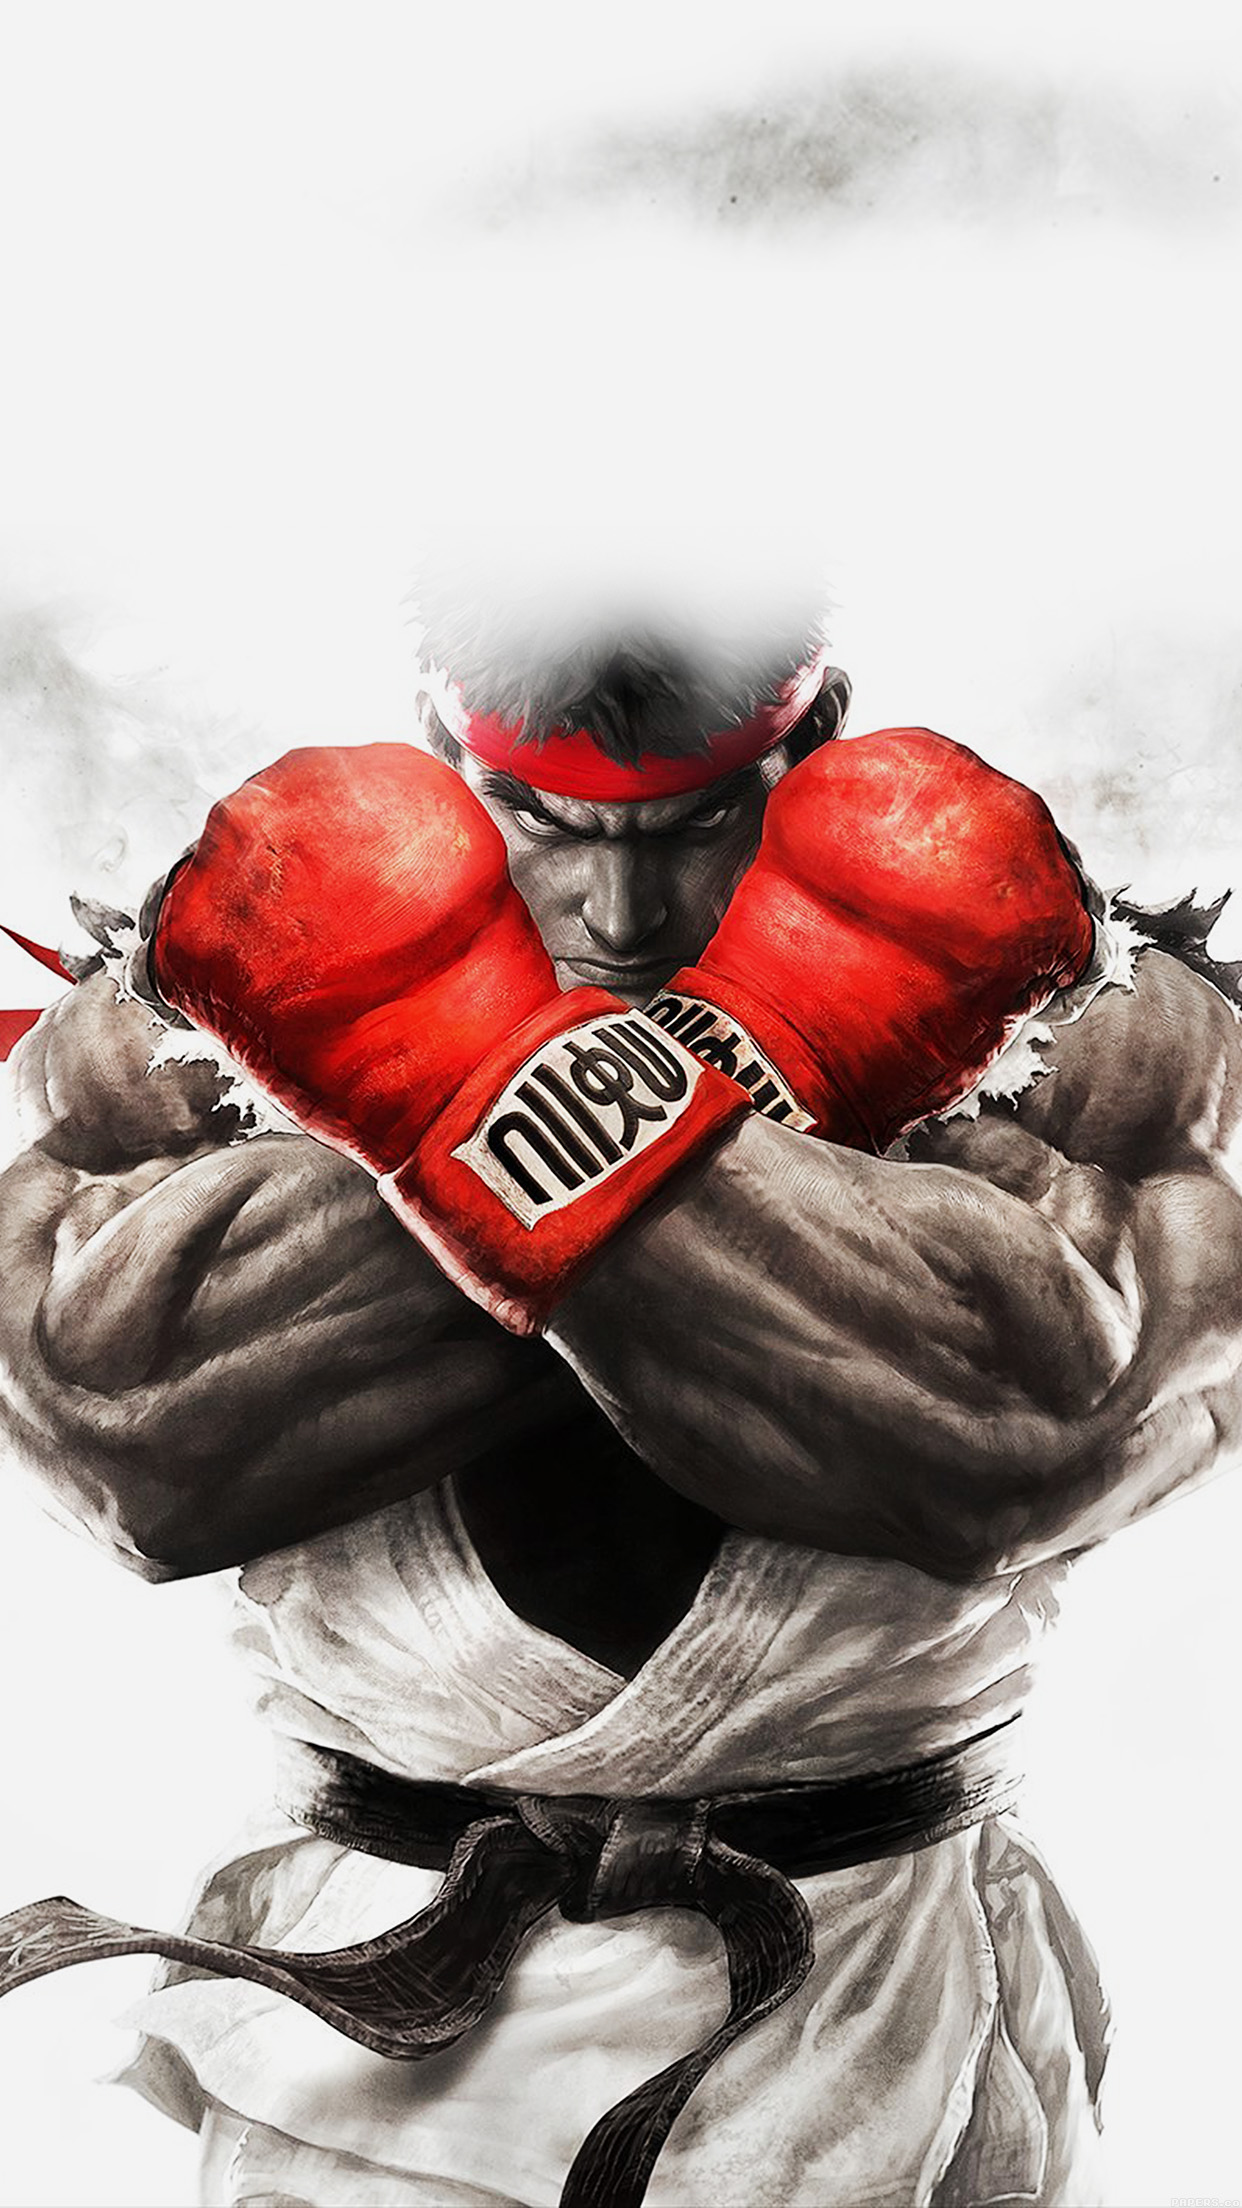 Graffiti Wallpaper For Iphone 5 Papers Co Iphone Wallpaper Ah69 Street Fighter Ryu Art